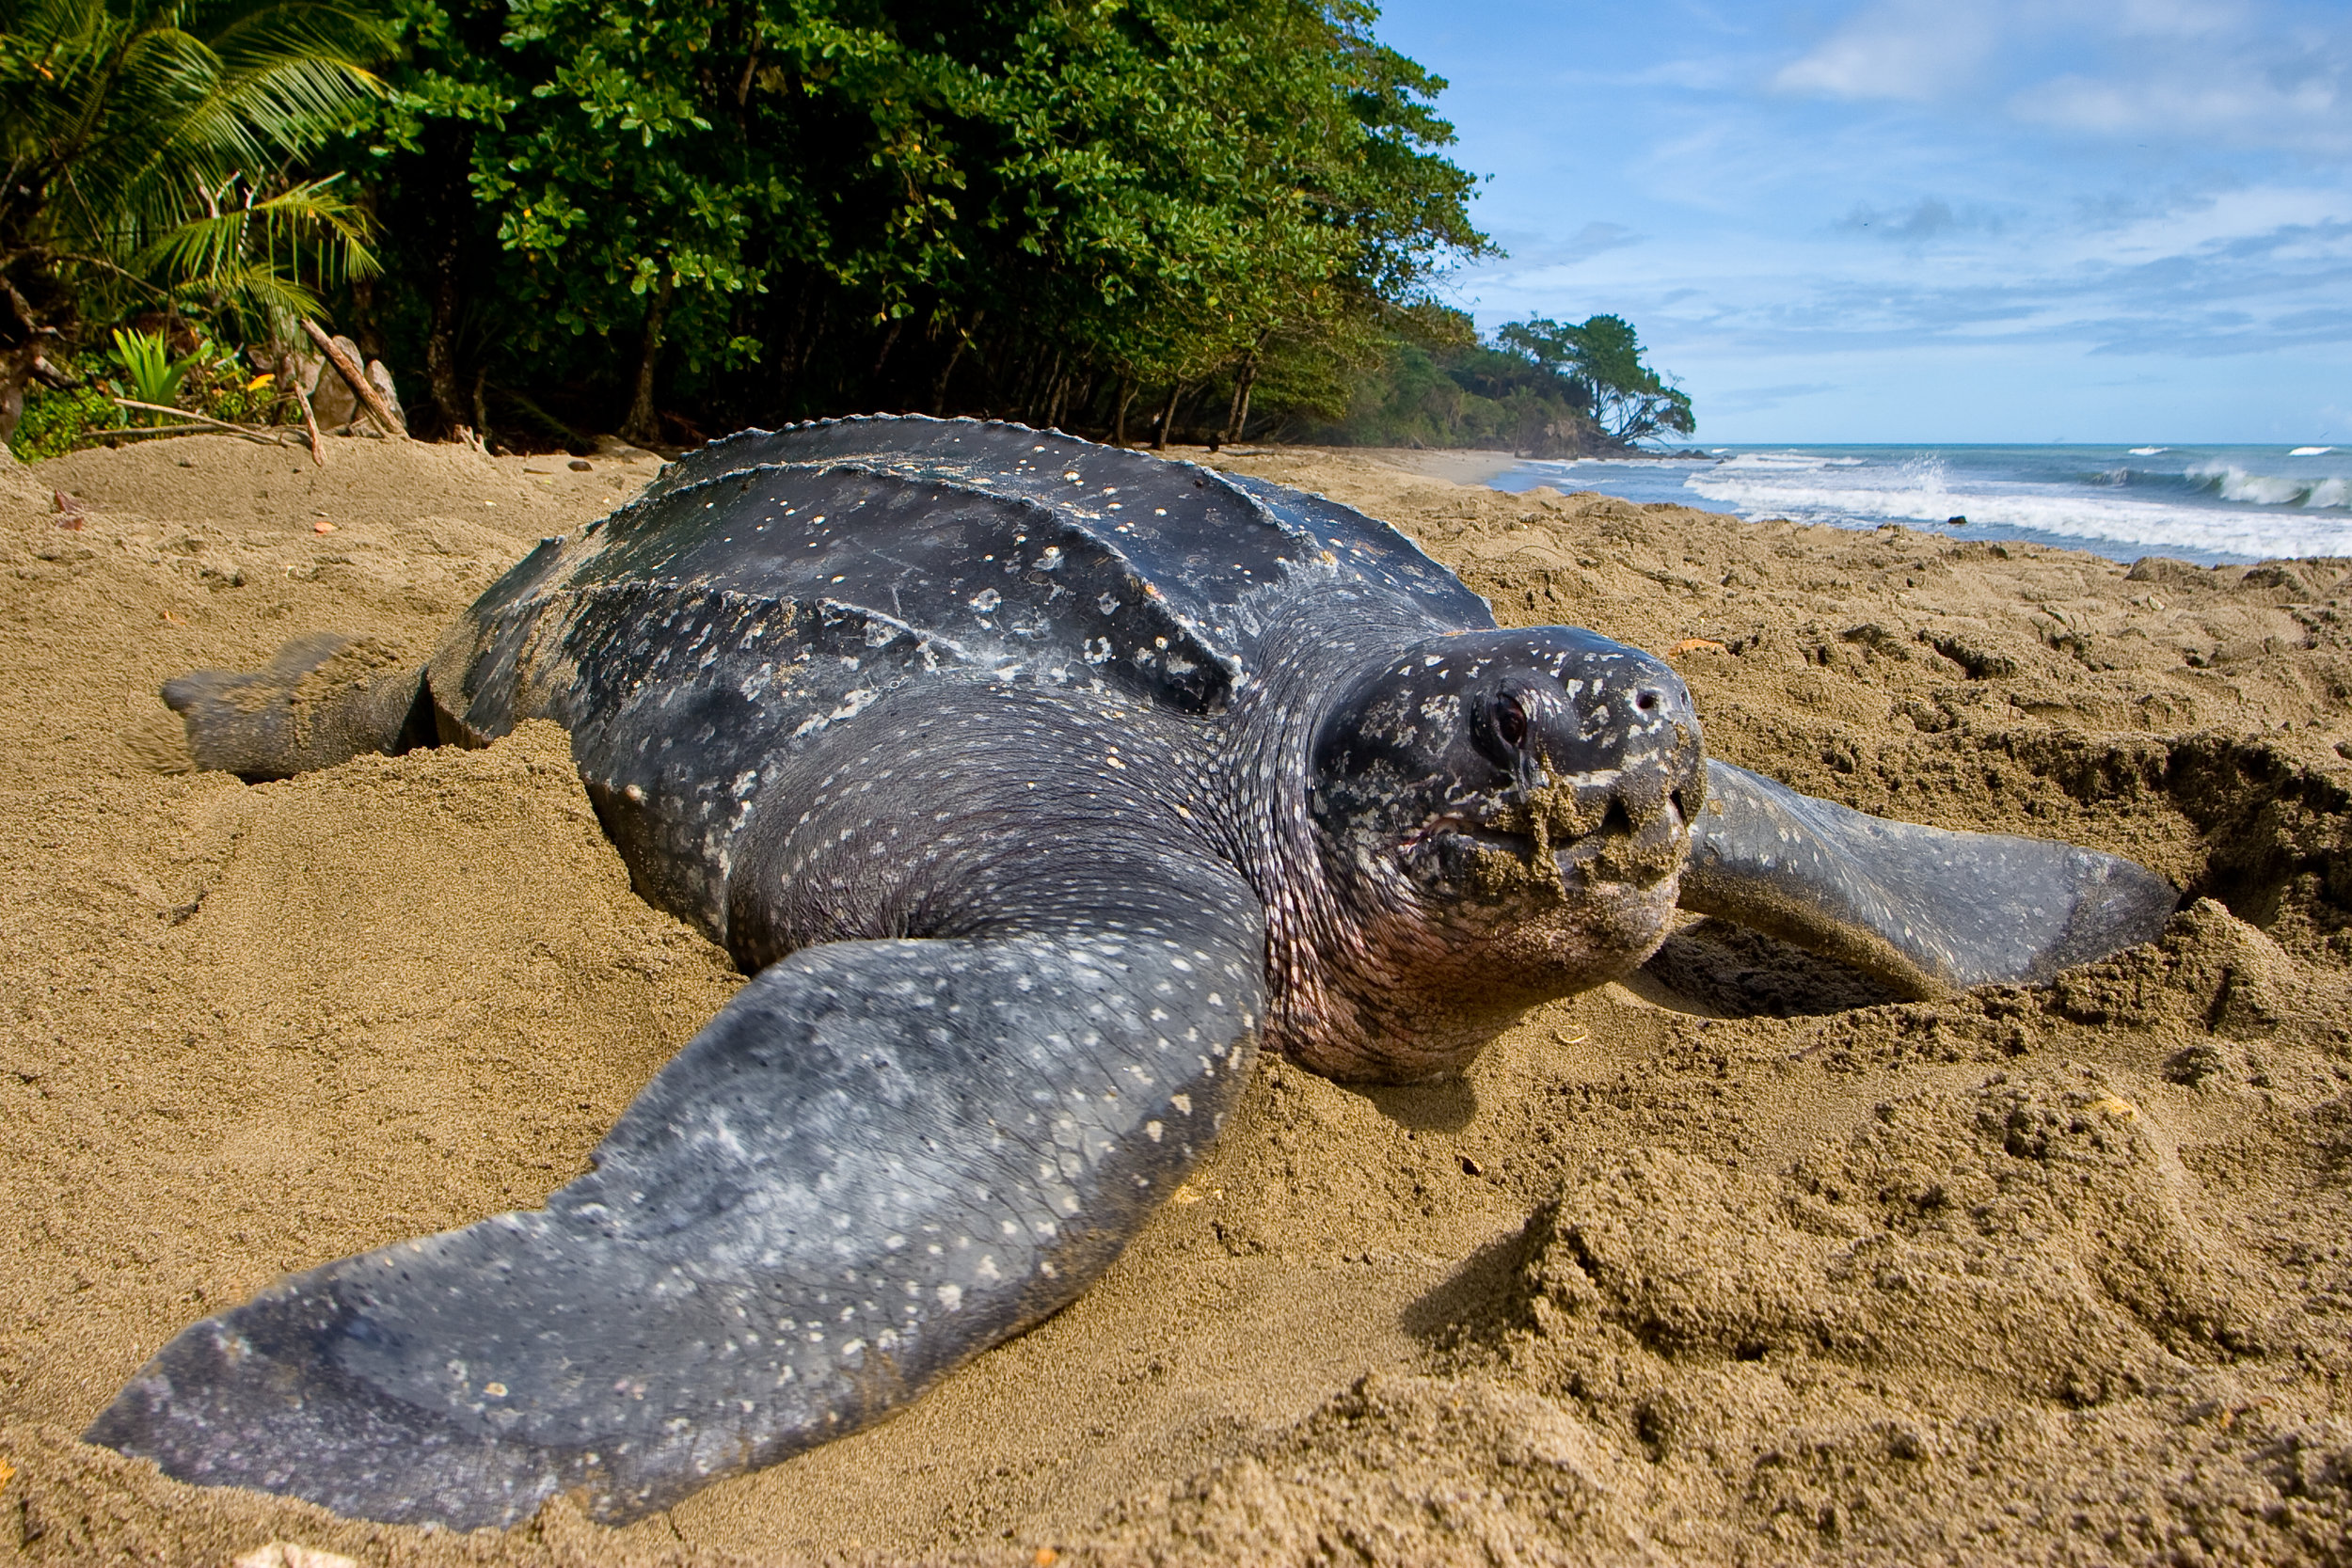 A leatherback turtle nests during daylight in Grande Riviere, Trinidad. © Brian J. Hutchinson